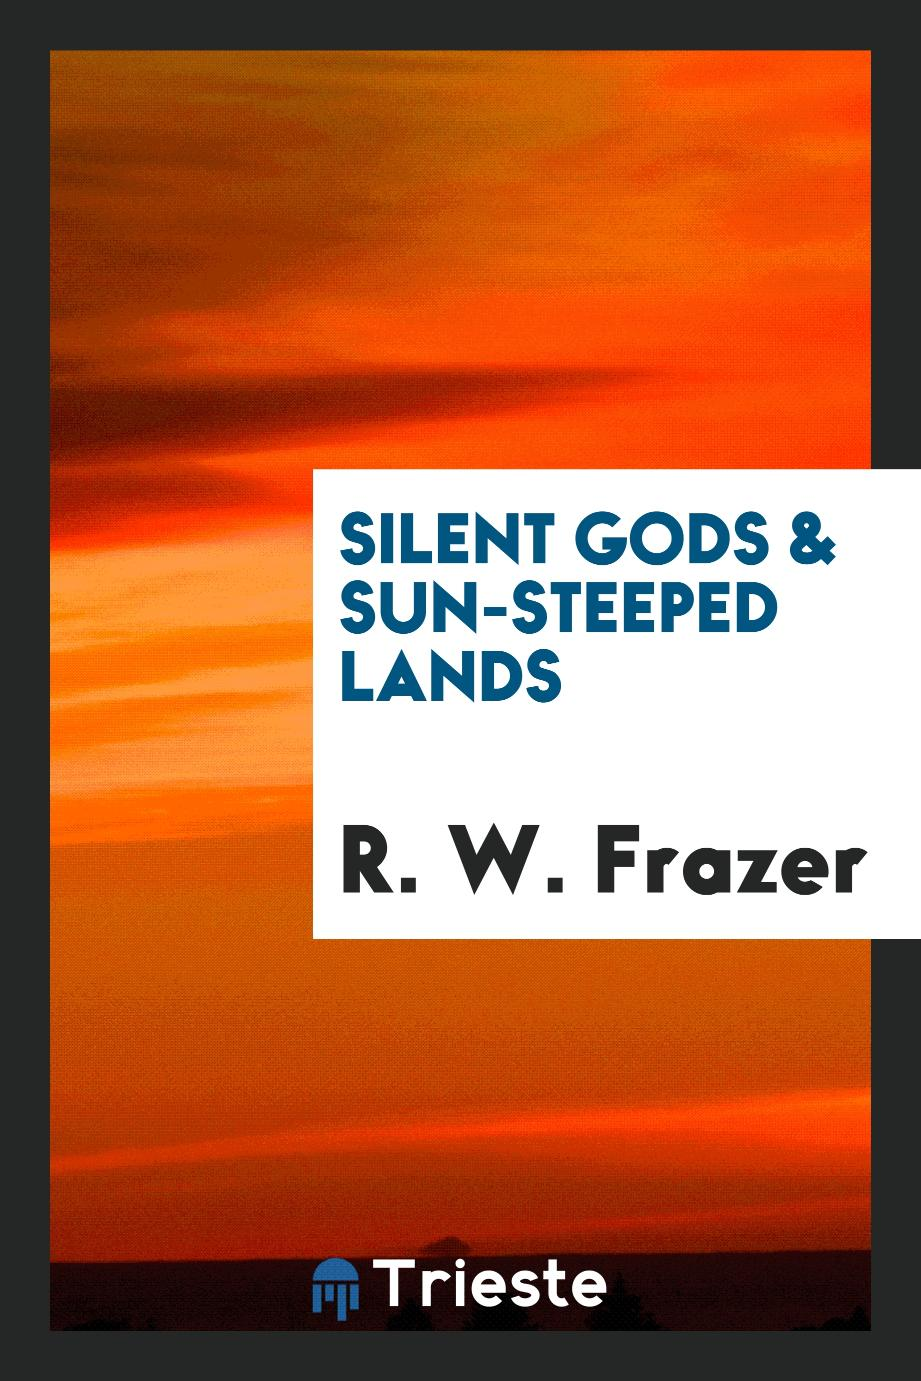 Silent gods & sun-steeped lands